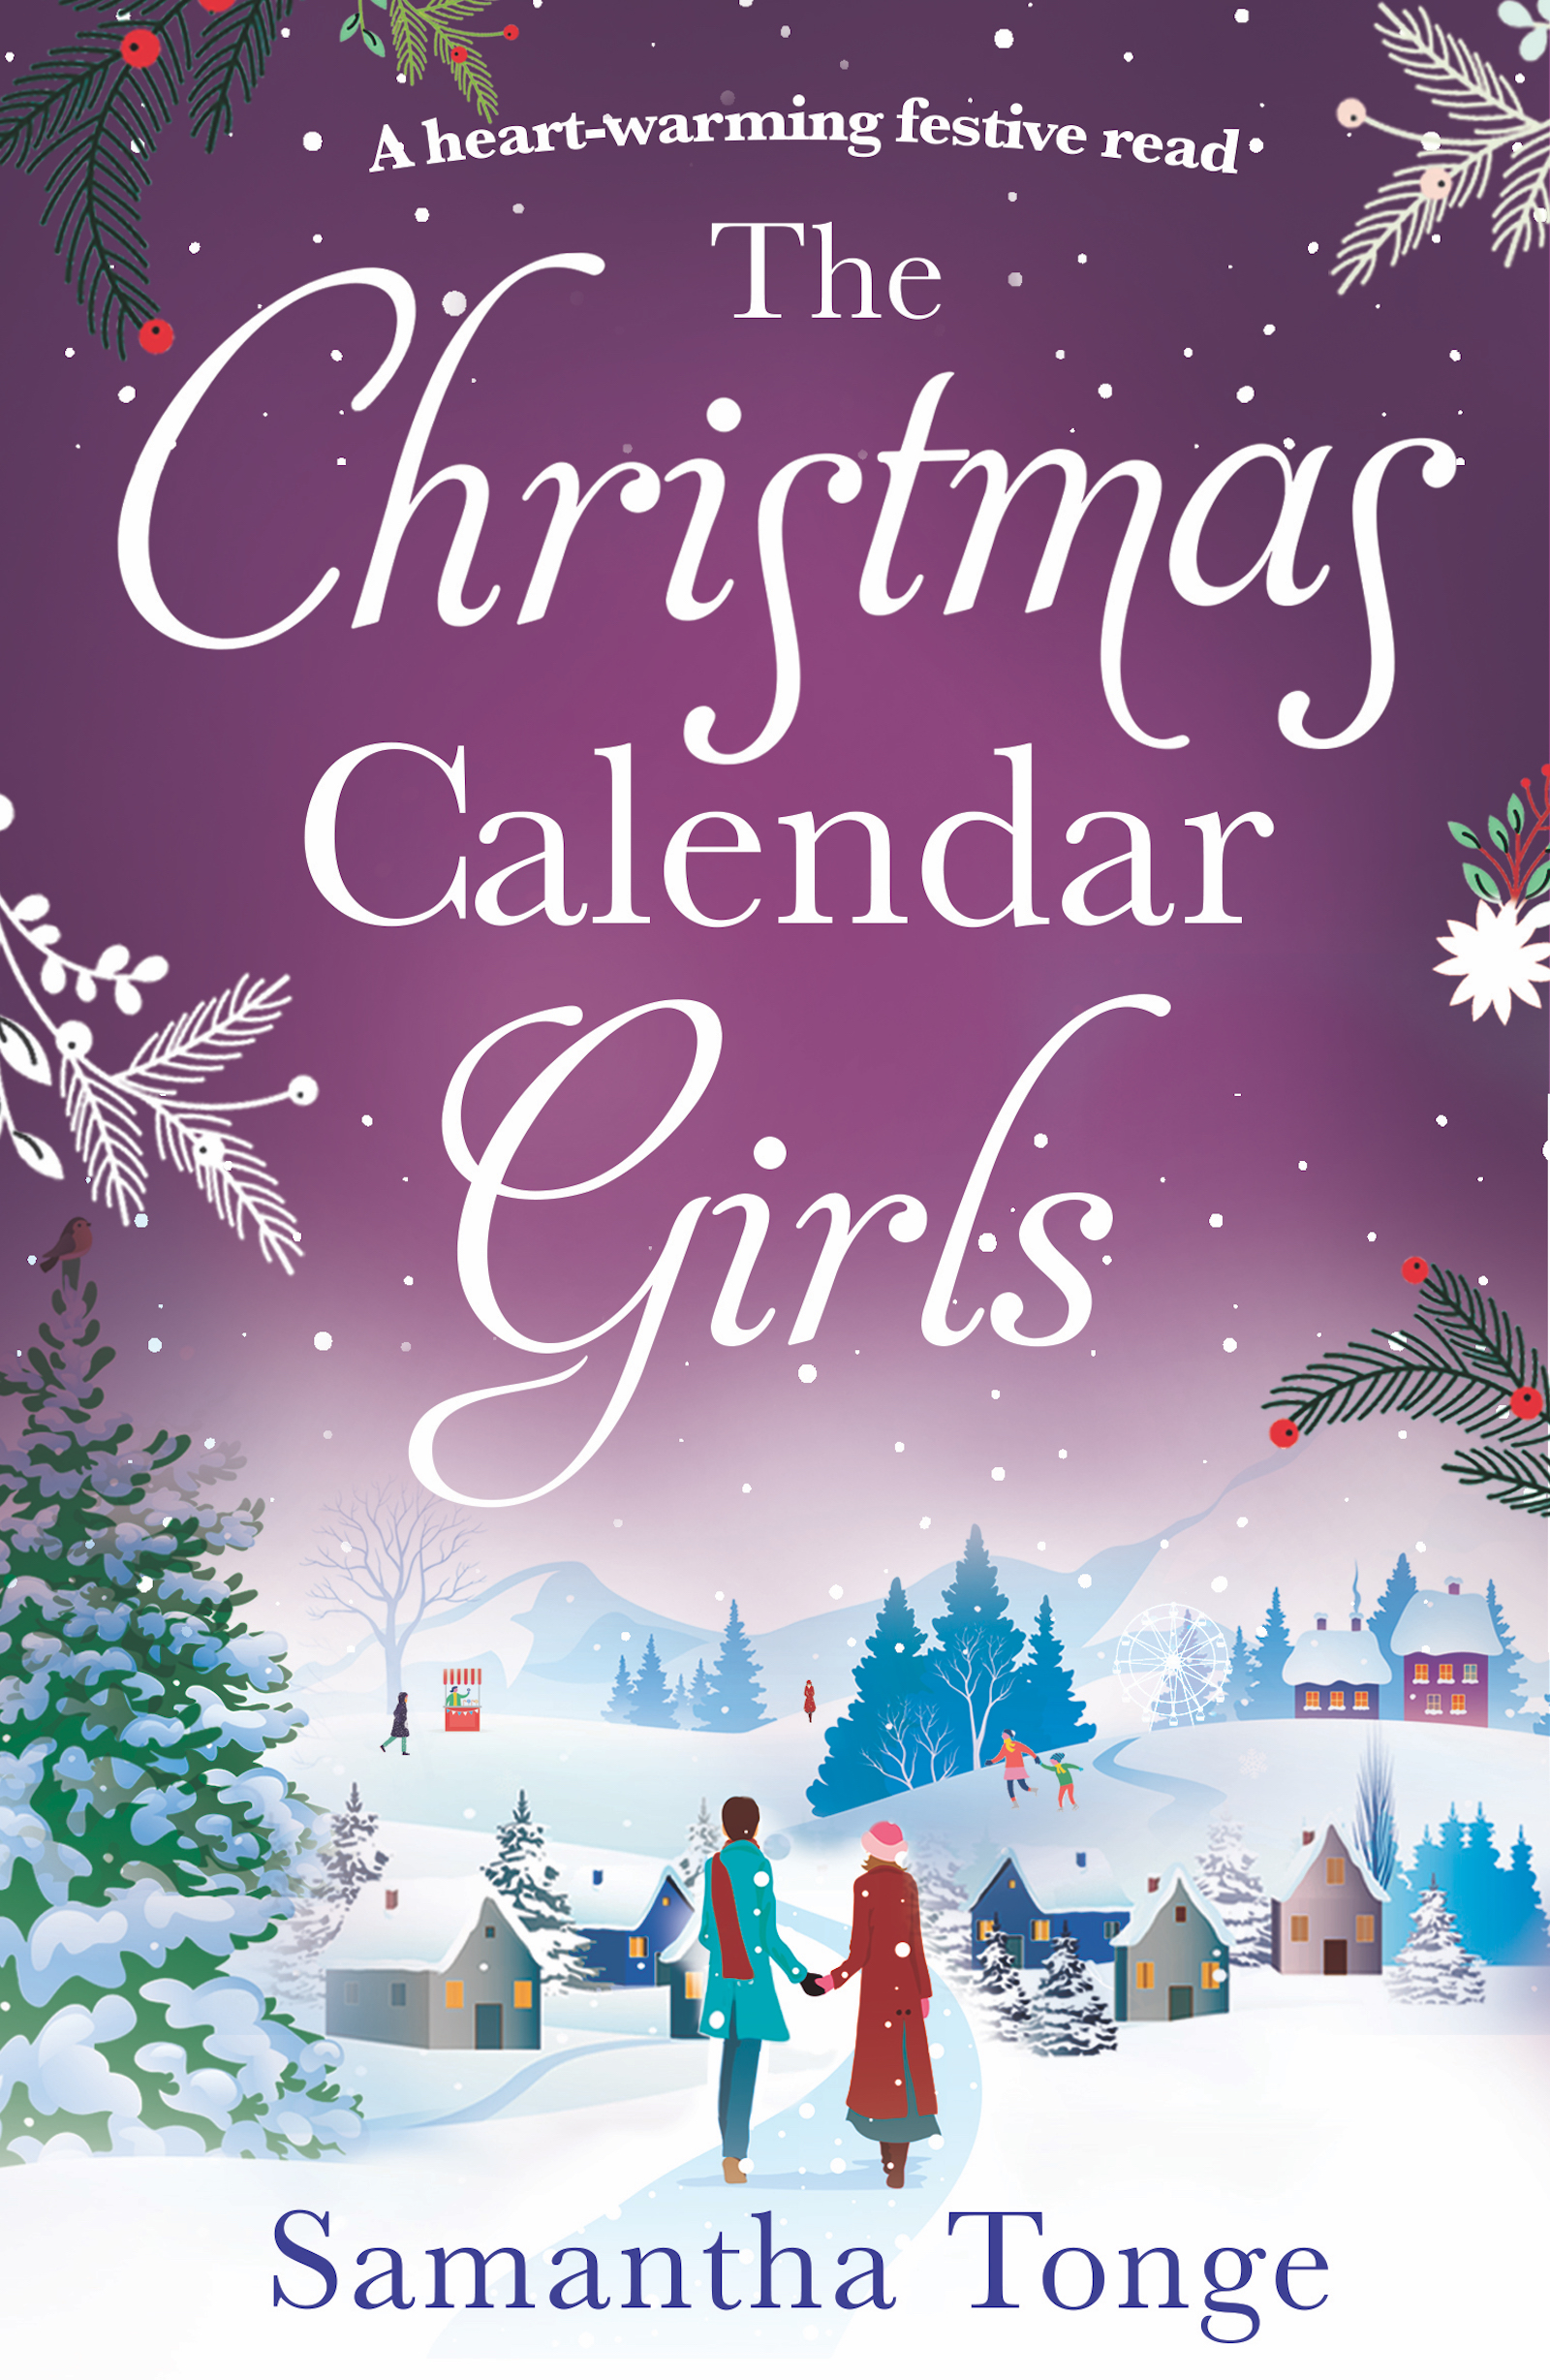 The-Christmas-Calendar-Girls